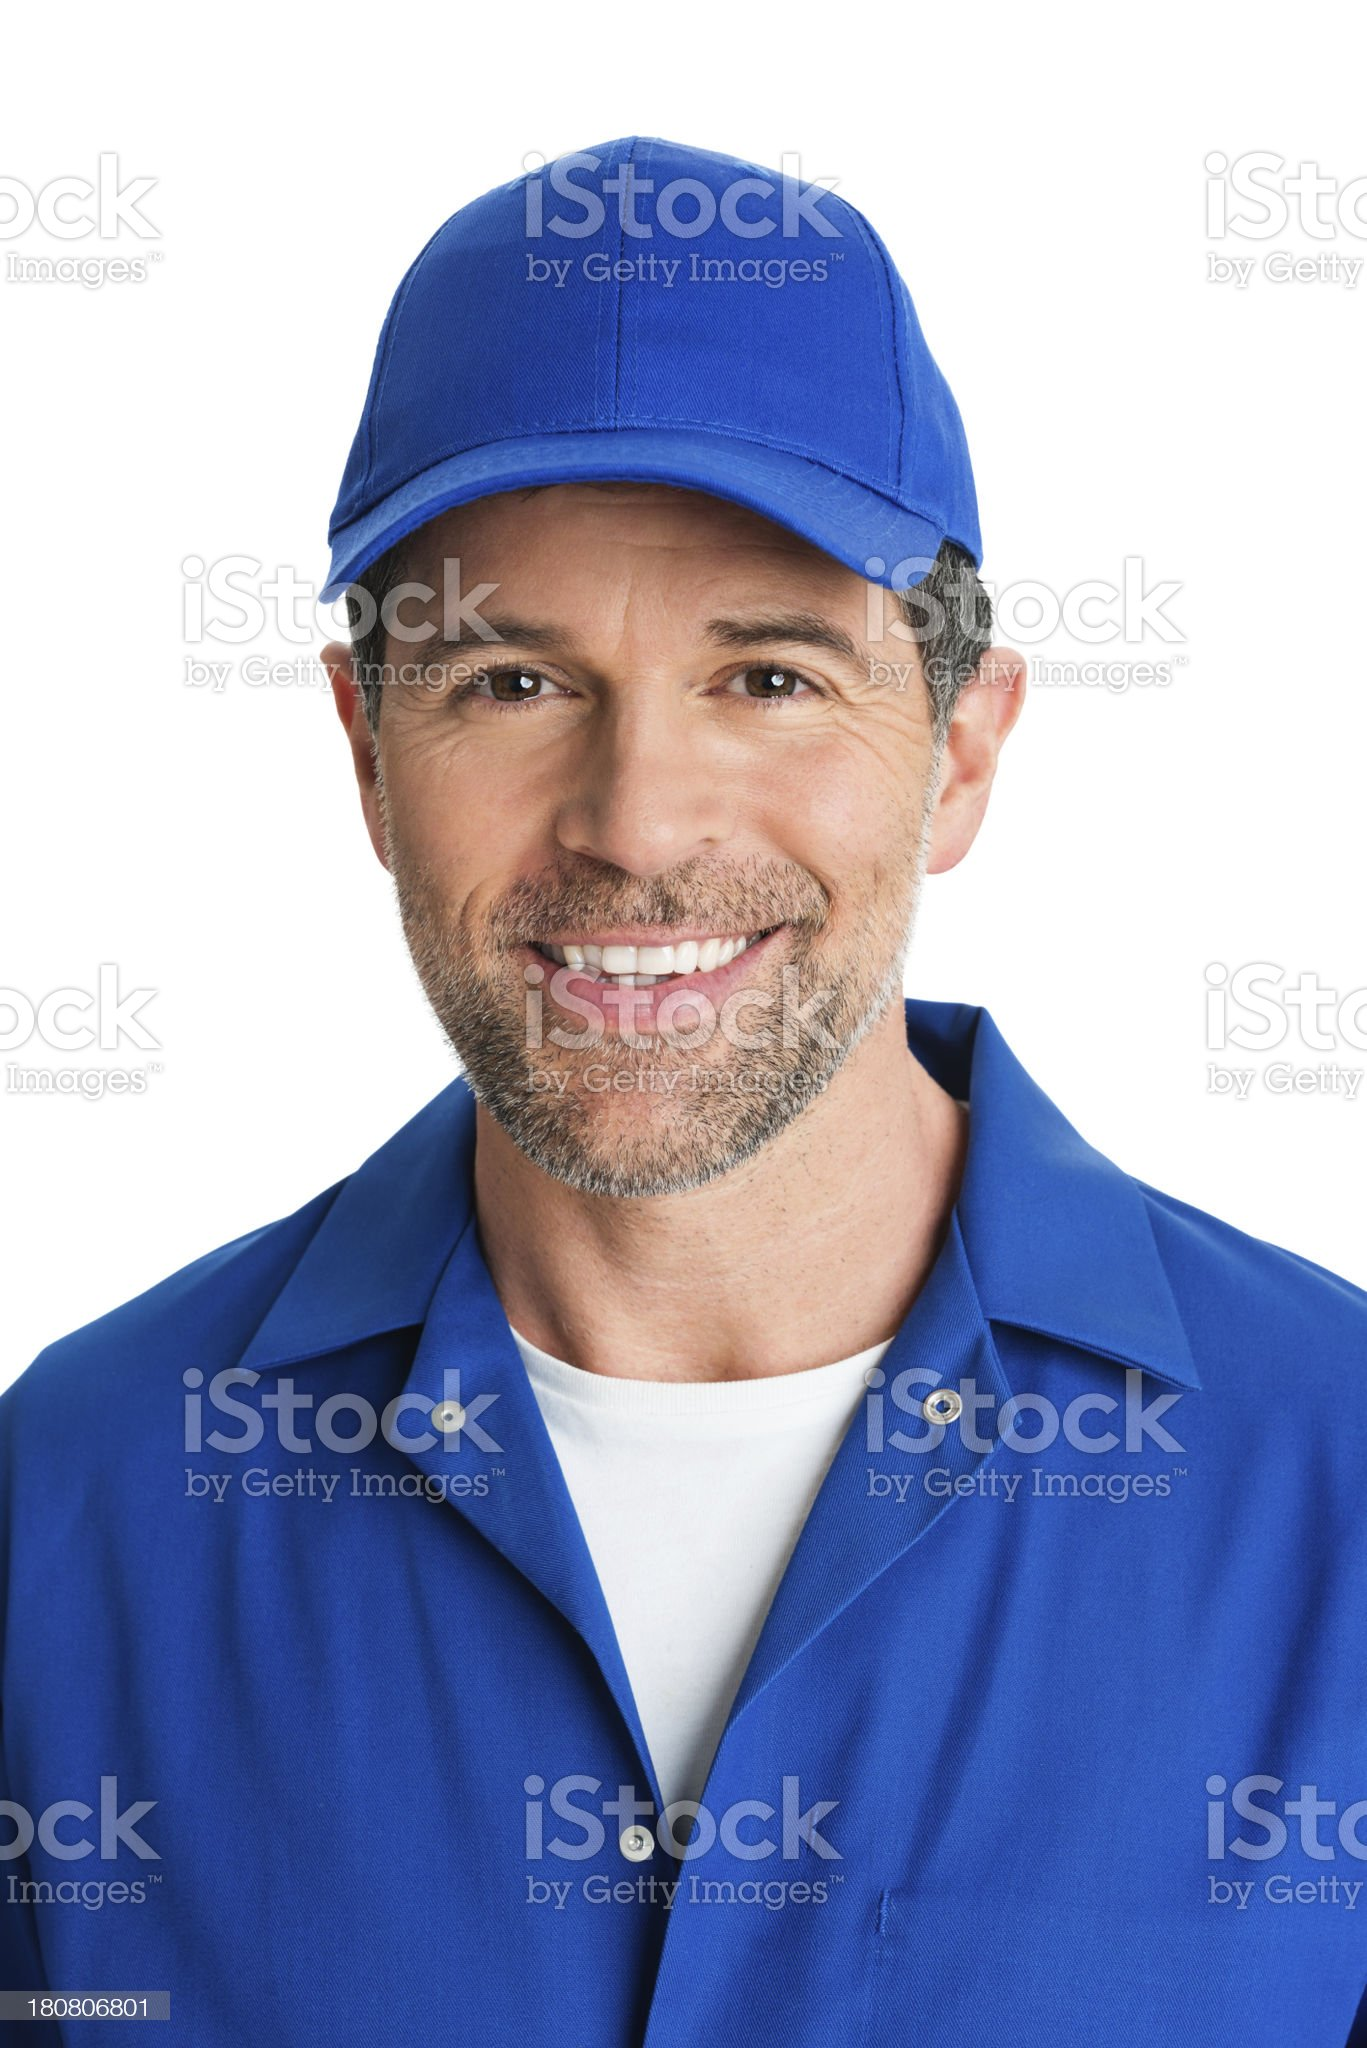 Handsome Repairman In Blue Uniform Smiling royalty-free stock photo